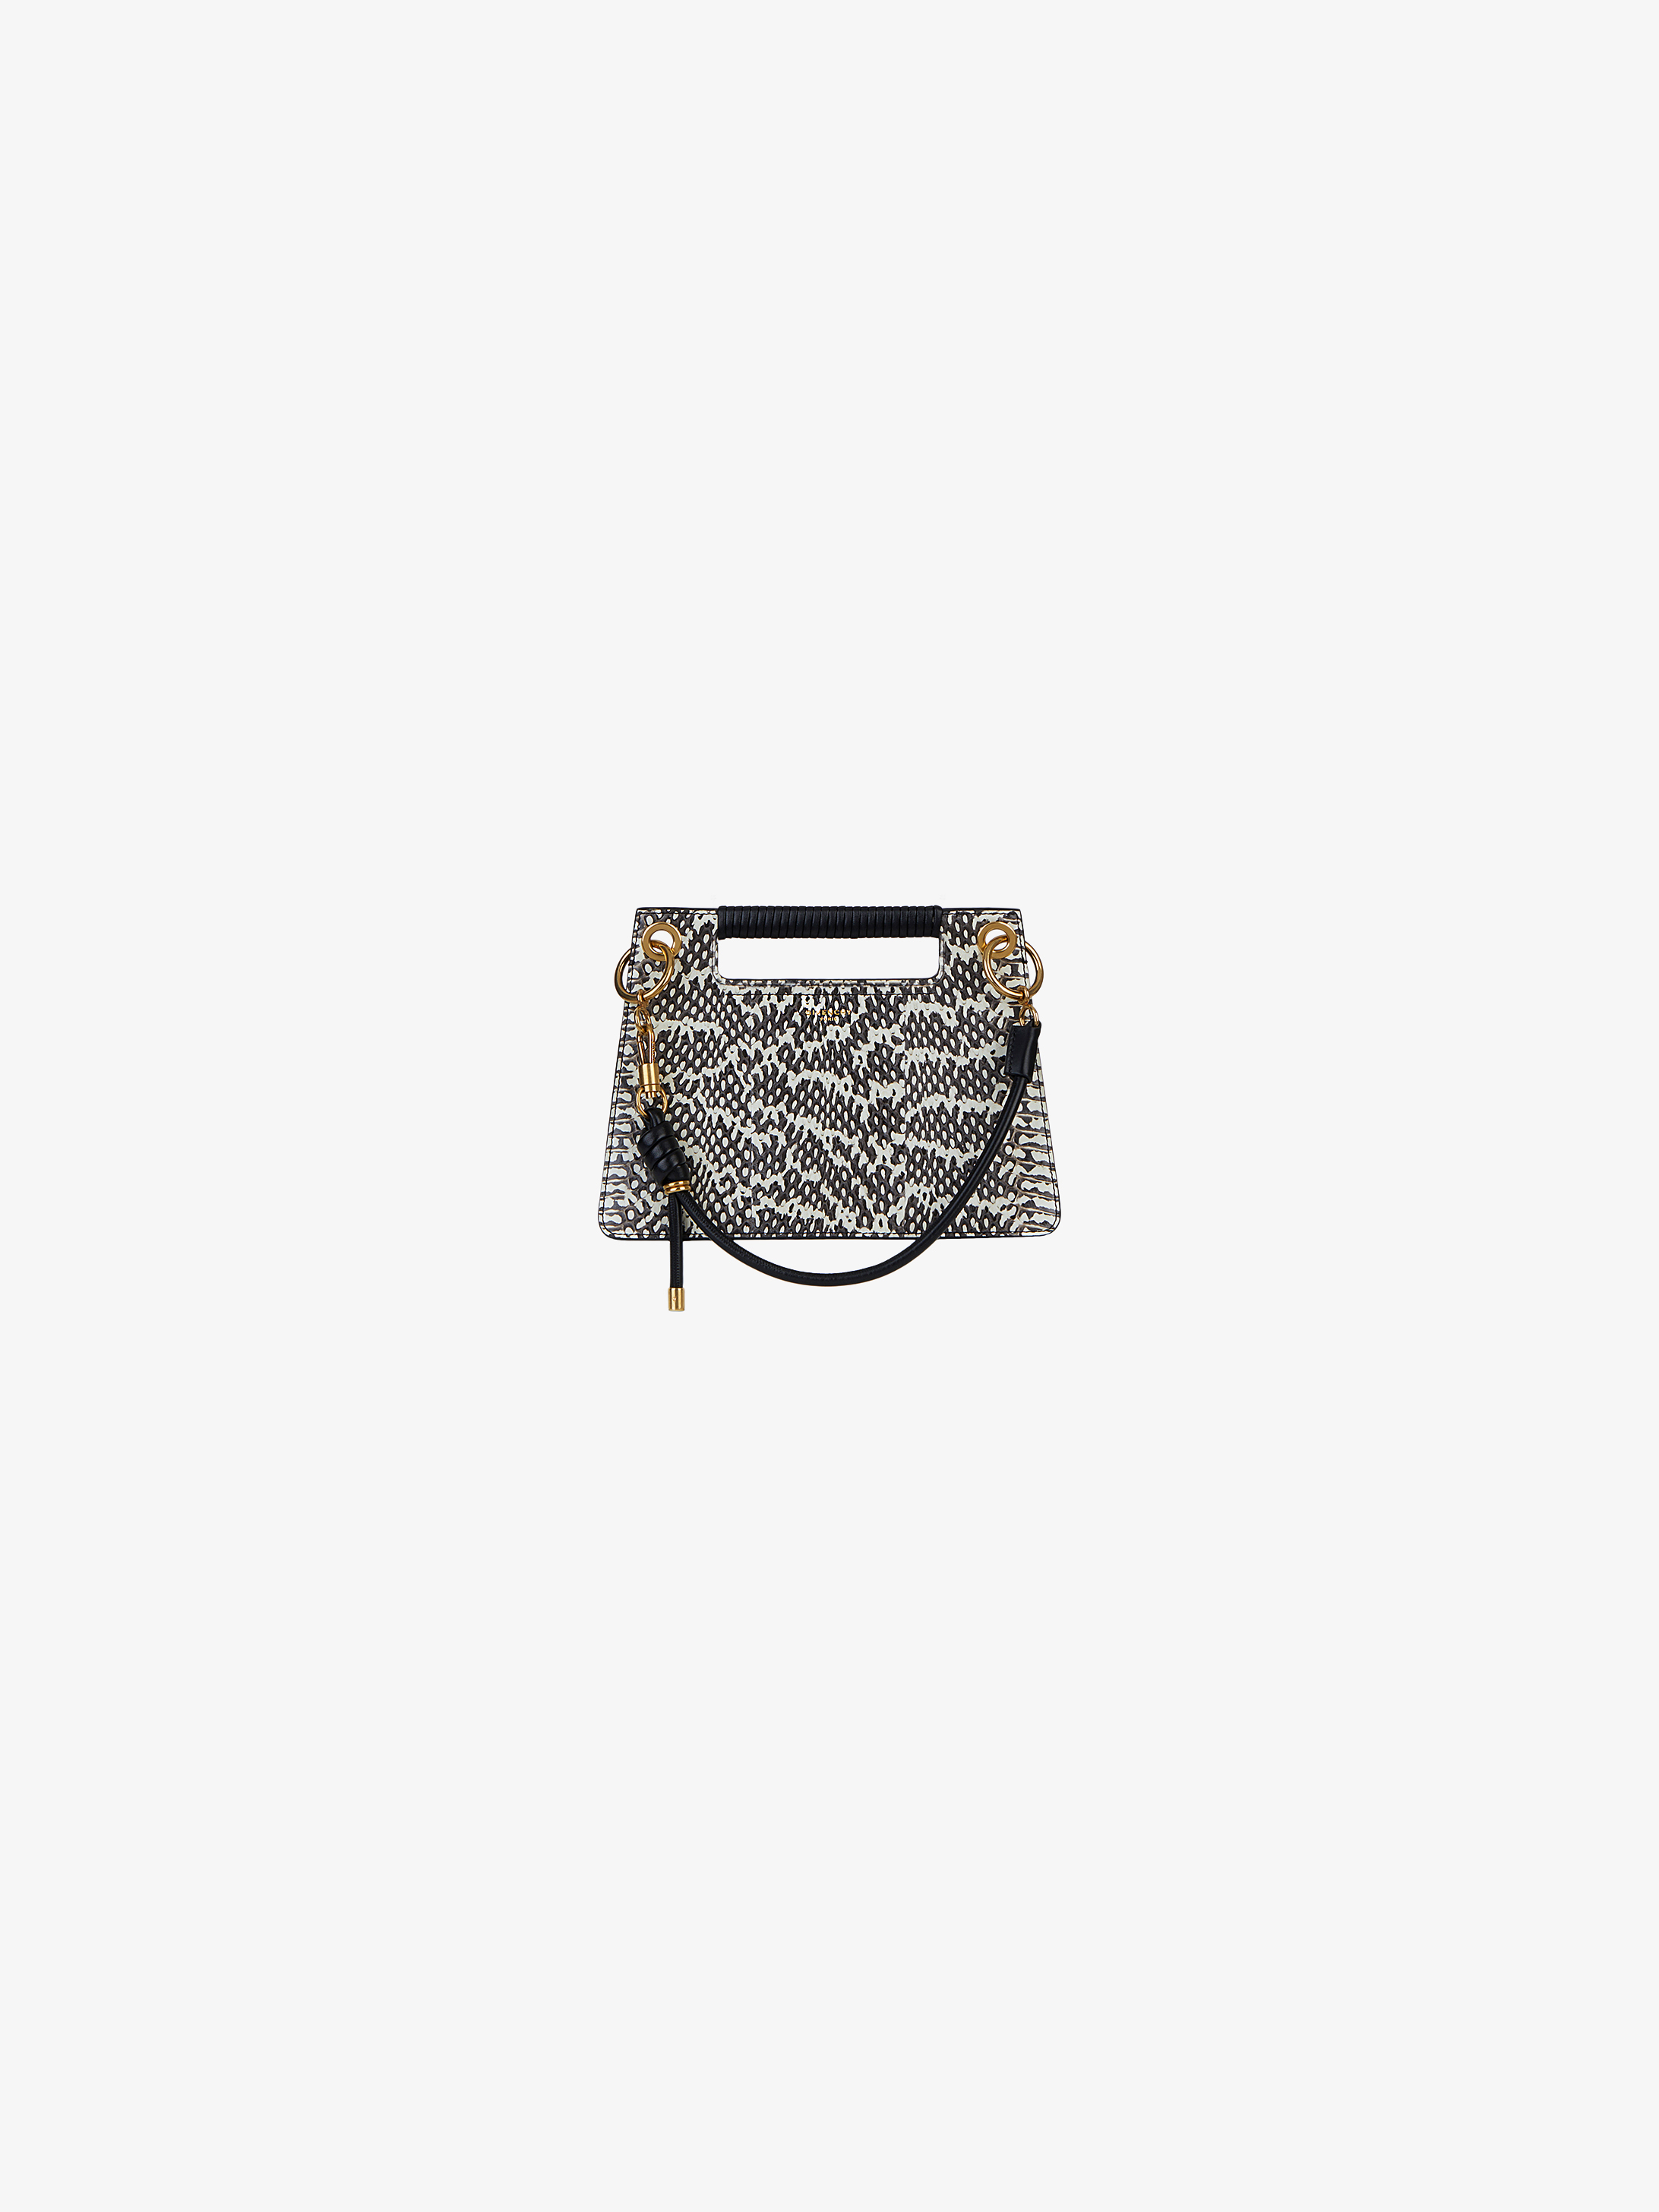 Small Whip bag in elaphe skin and leather